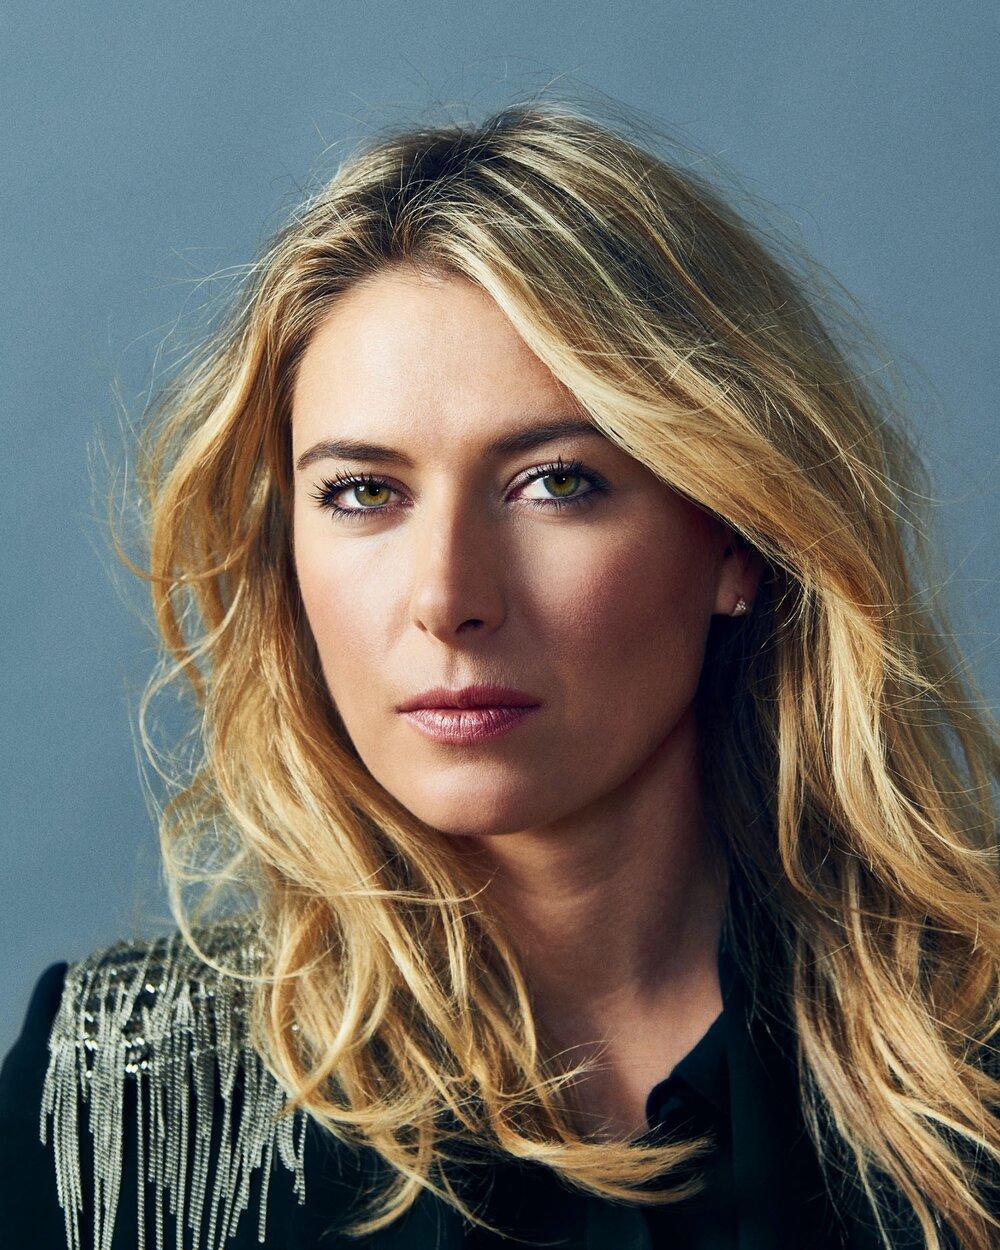 Maria Sharapova, Athlete, Los Angeles, California, 2015